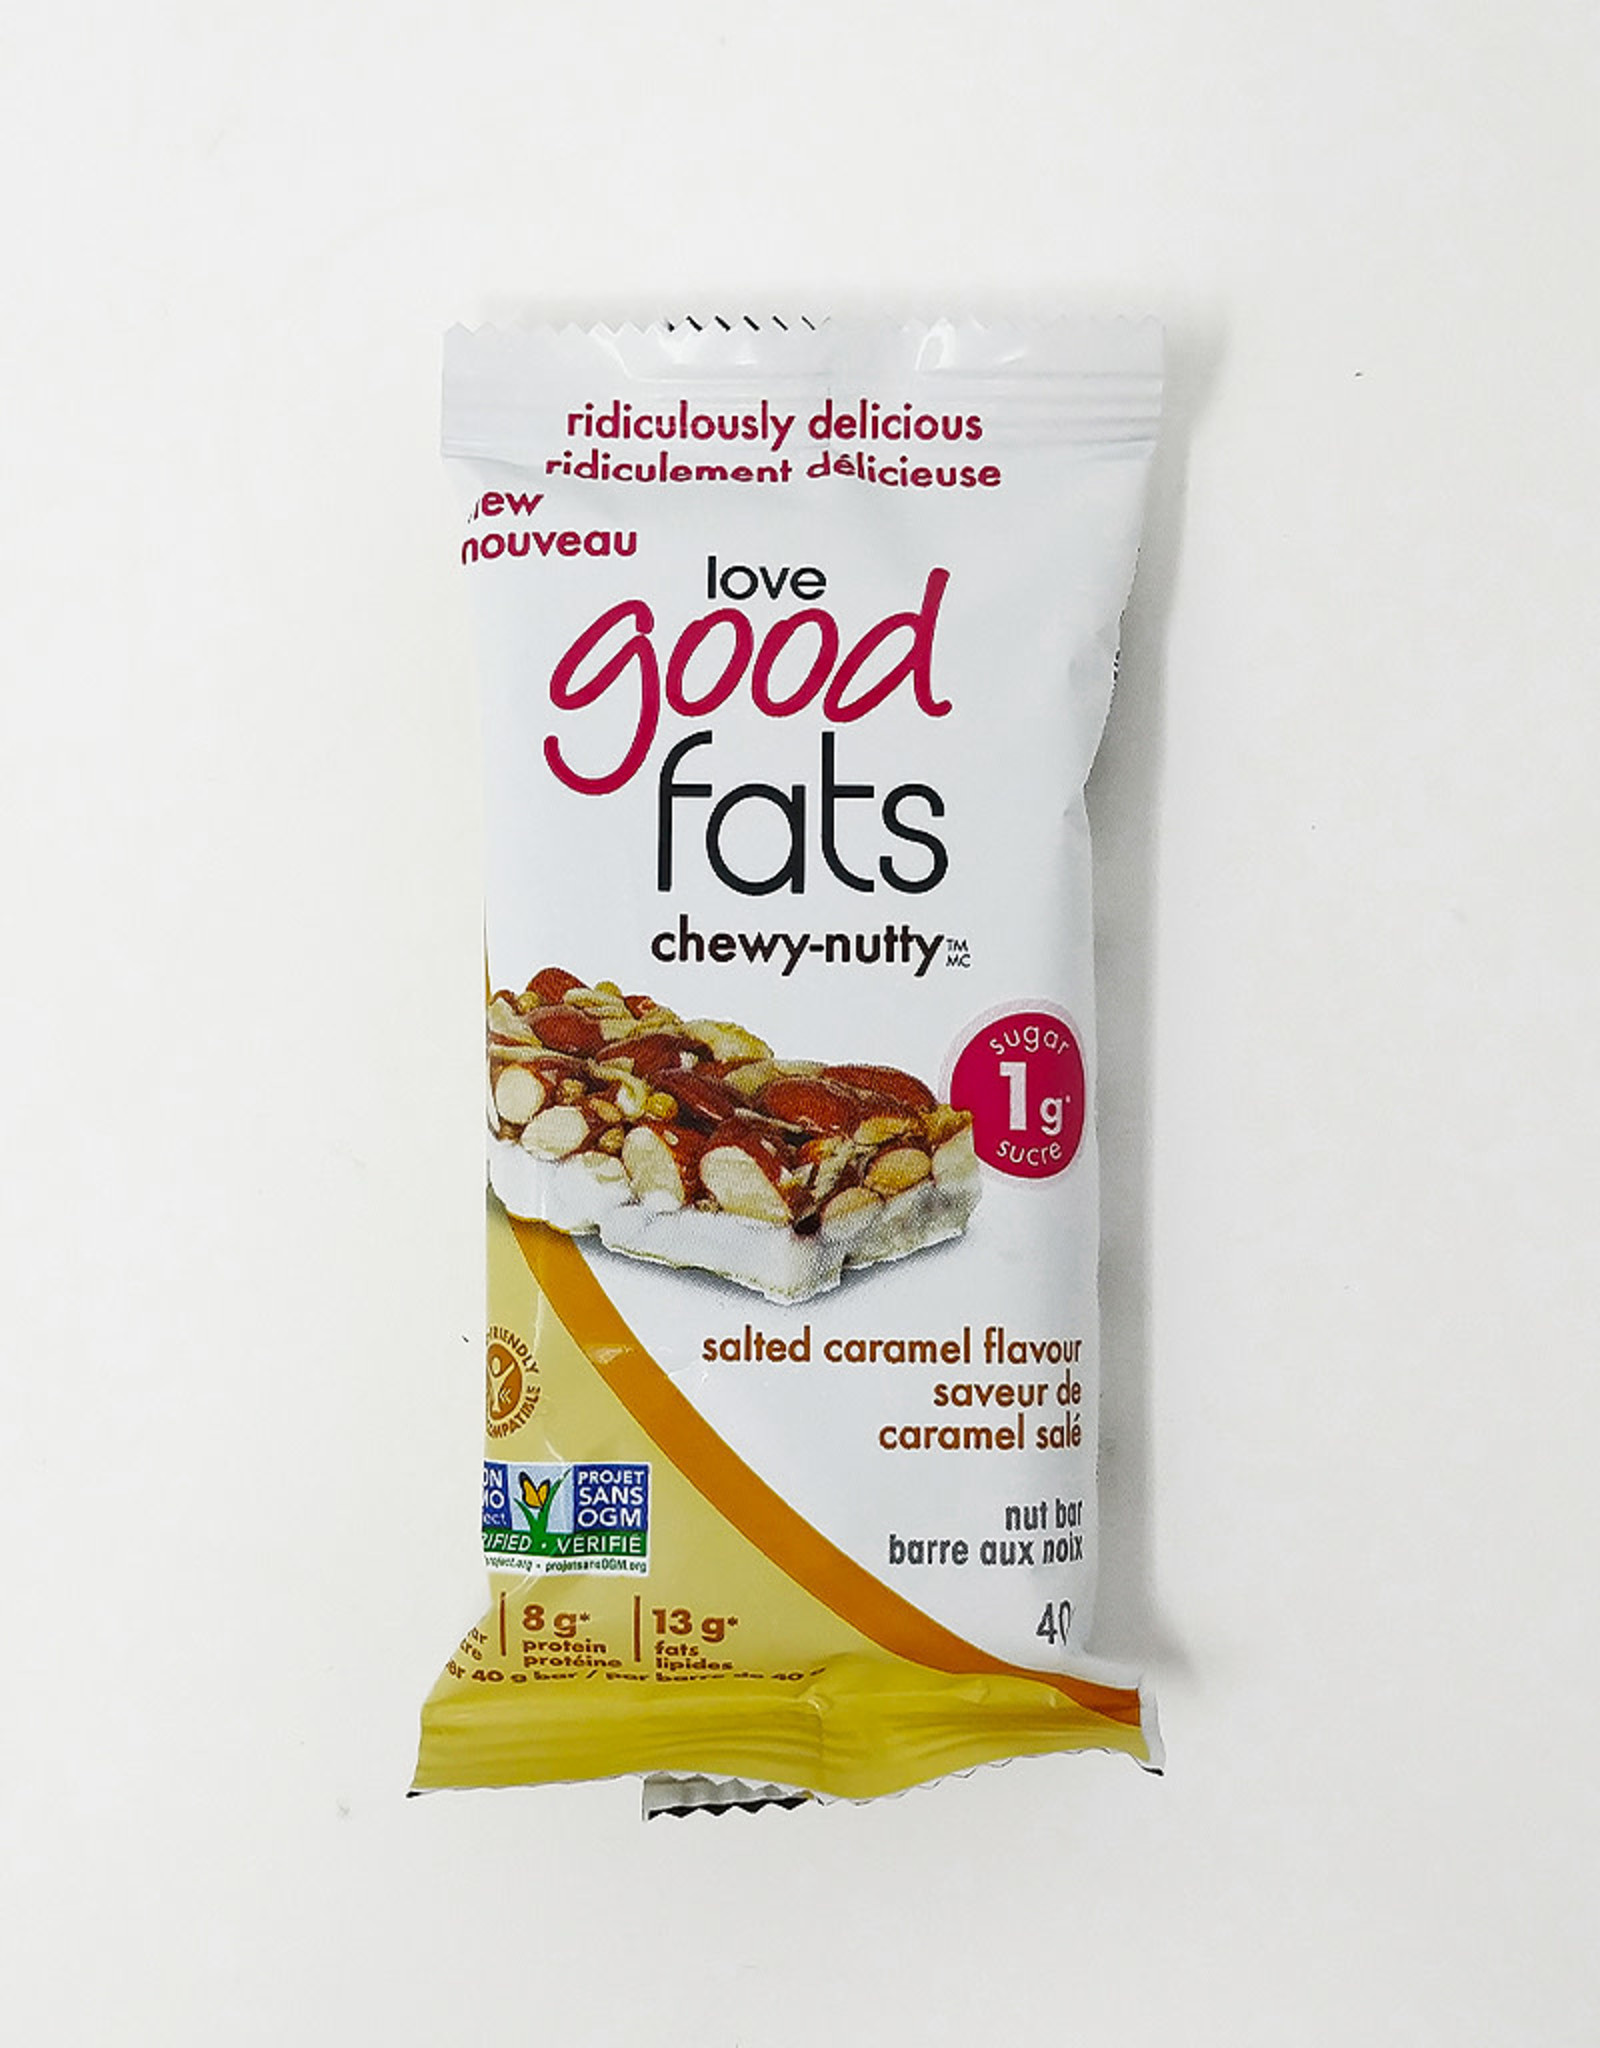 Love Good Fats Love Good Fats - Chewy-Nutty Salted Caramel (40g)